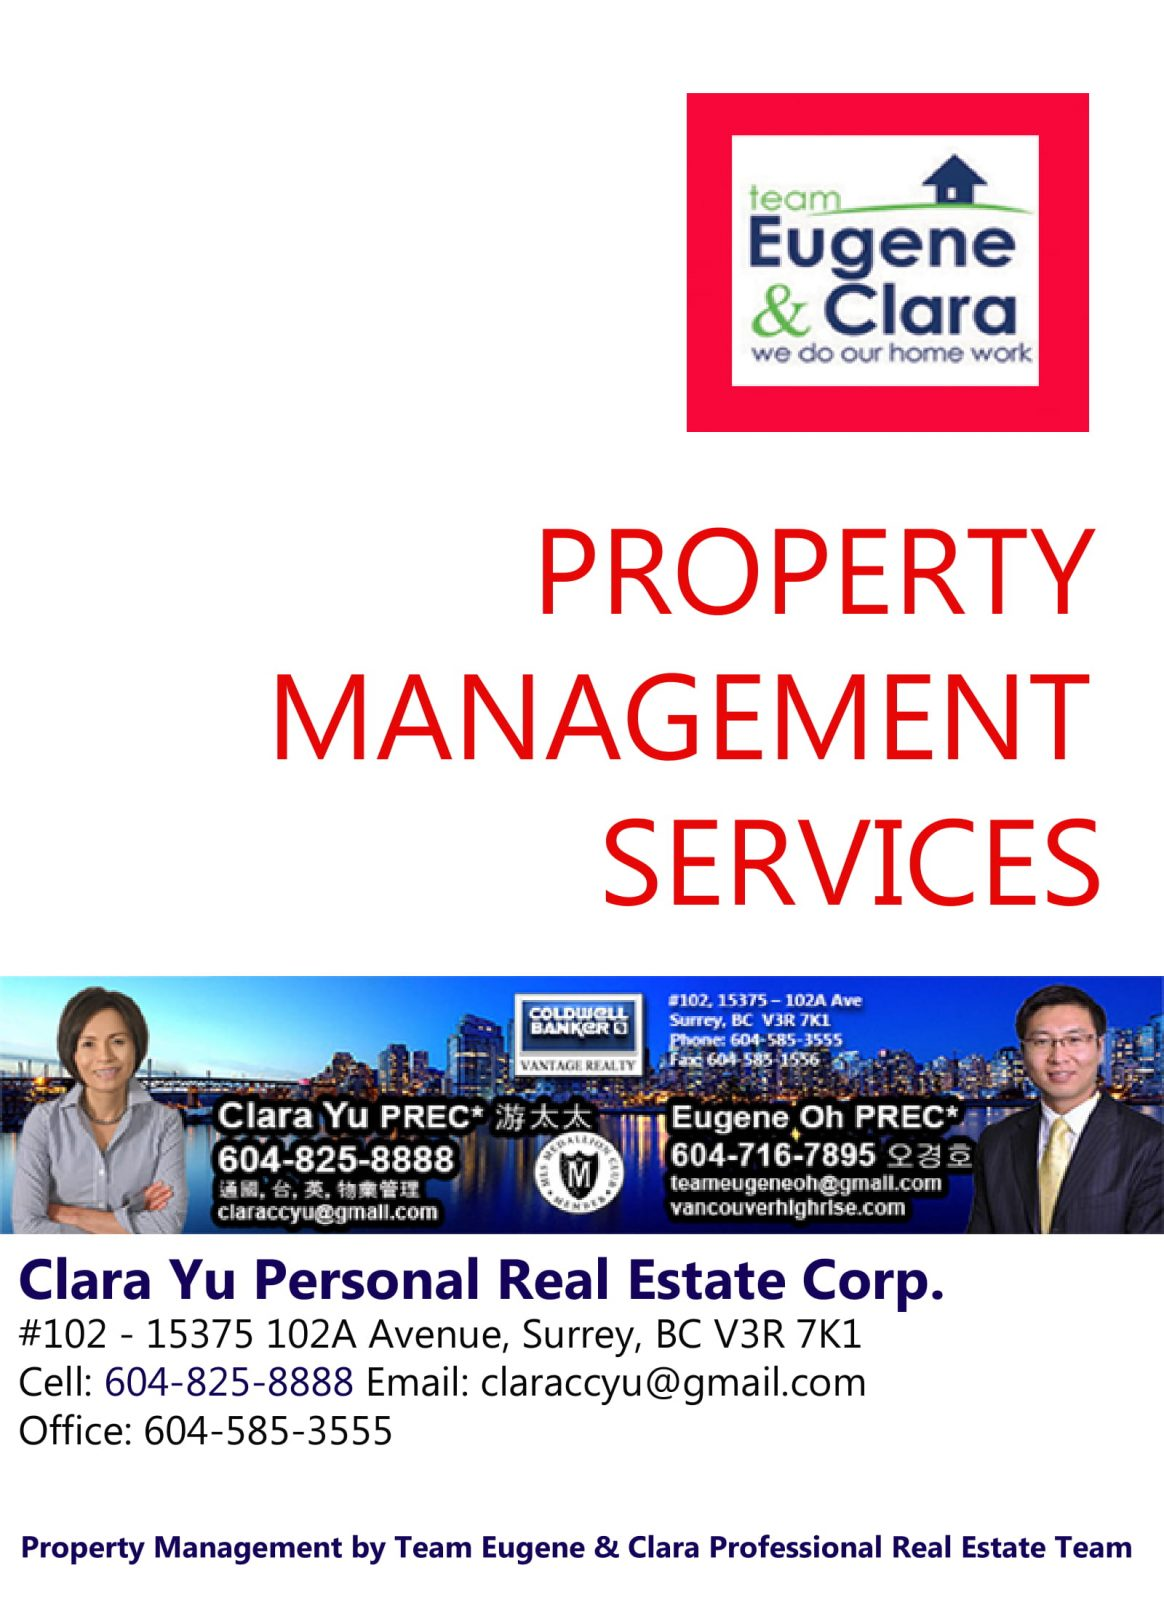 Property Management Services_Revised 2-1